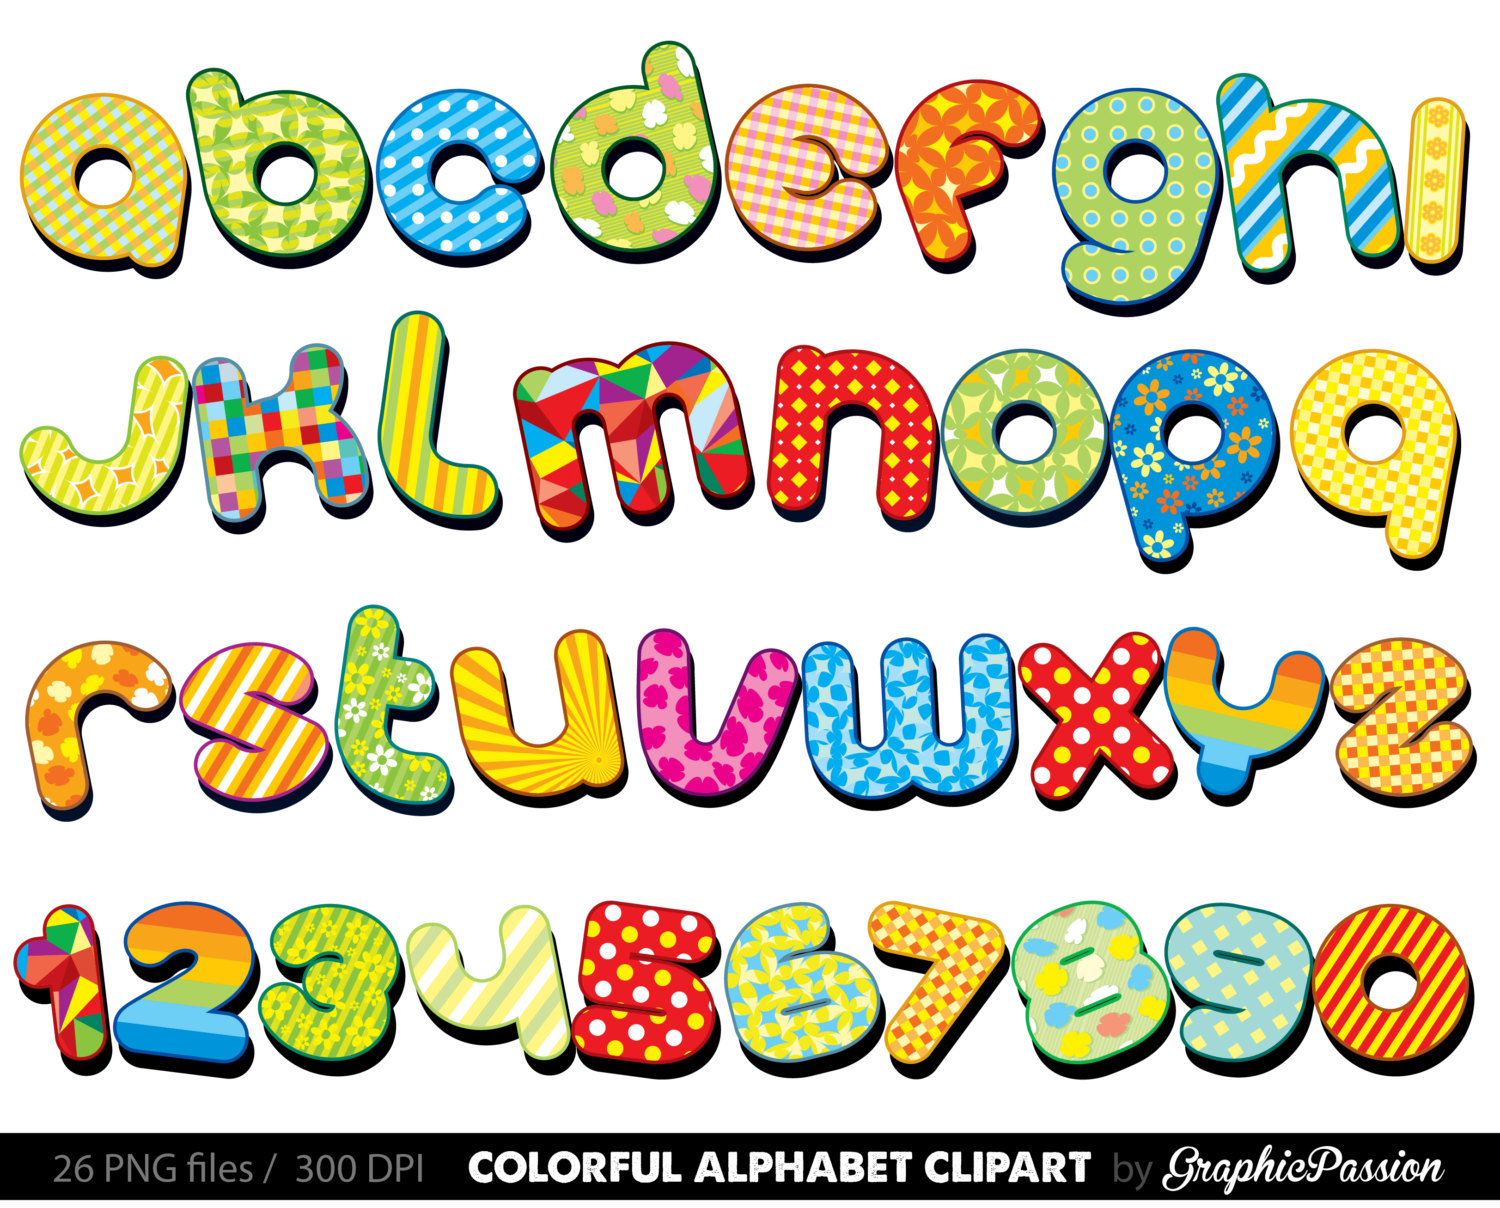 Colorful Alphabet Clipart .-Colorful Alphabet clipart .-16